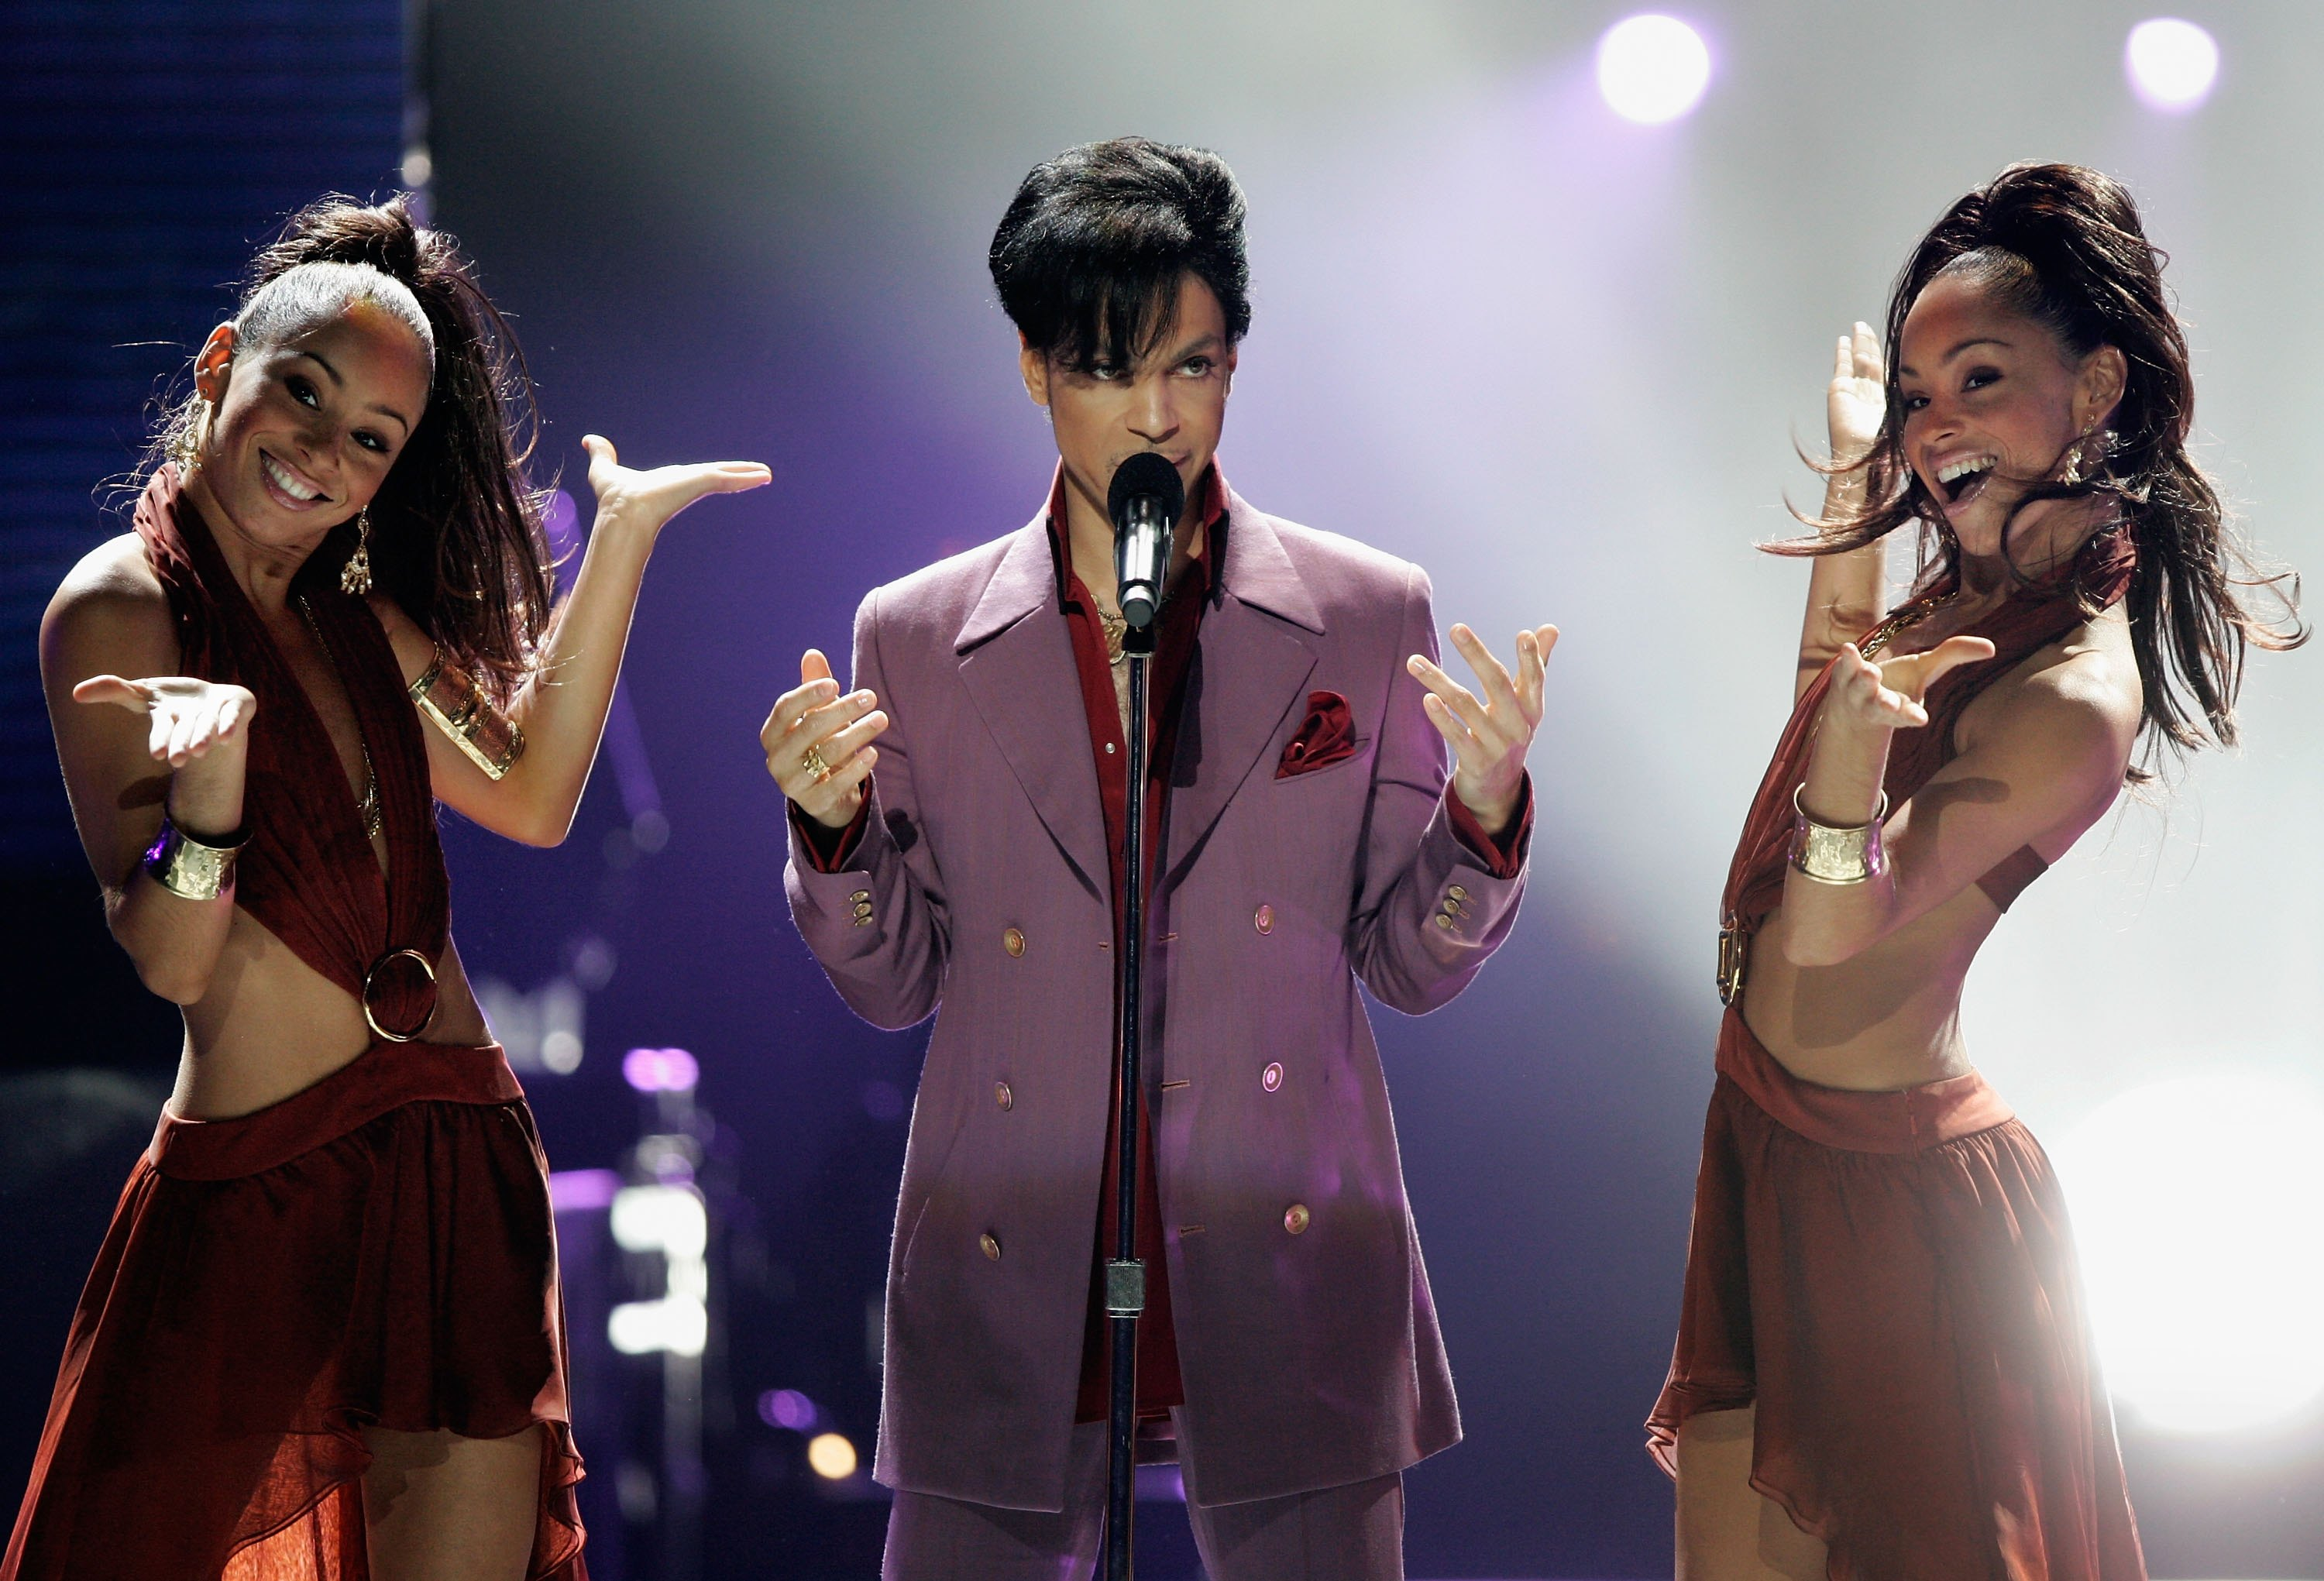 Prince performs during the American Idol Season 5 Finale on May 24, 2006 in Hollywood, Calif.